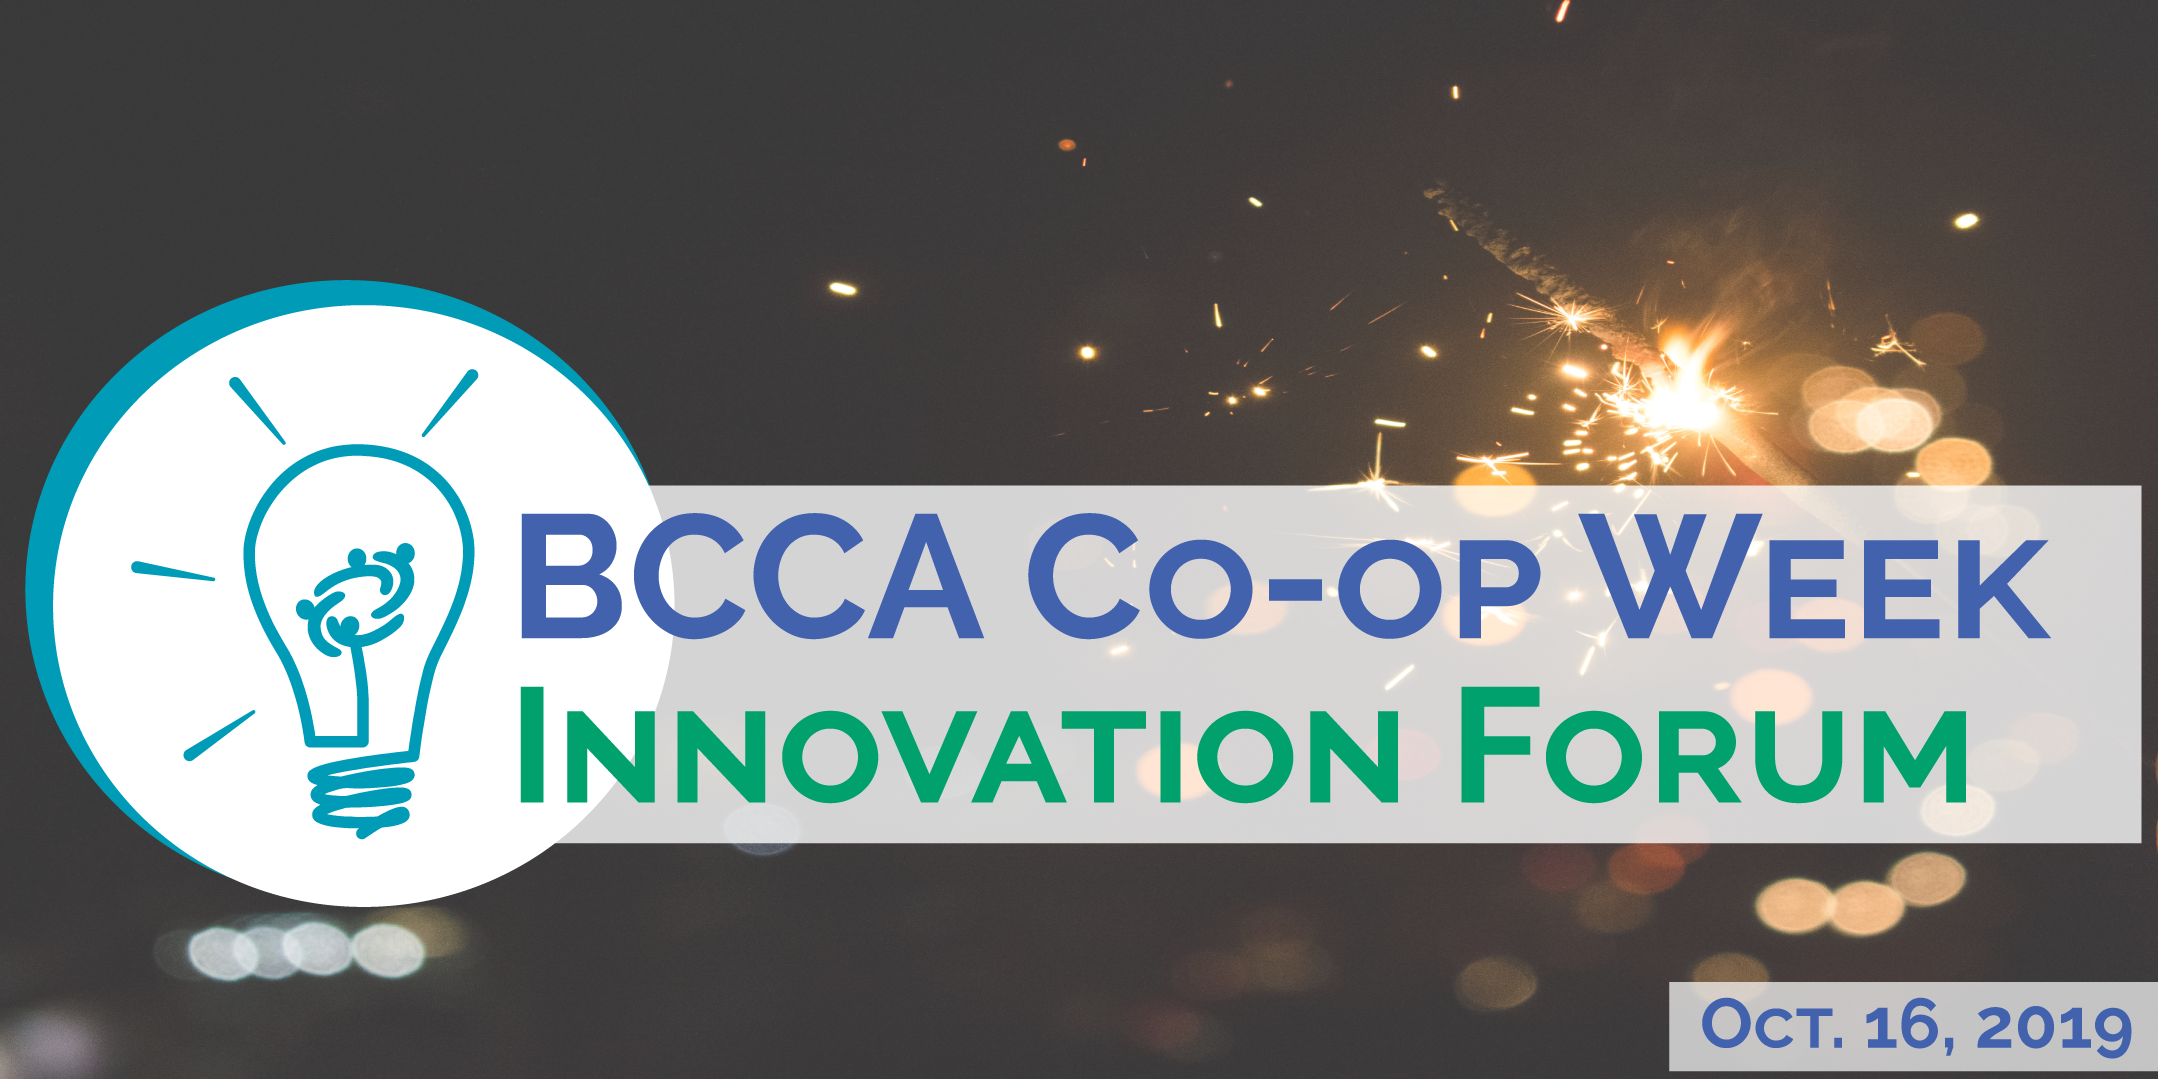 BCCA 2019 Co-op Week Forum event header image with event date Oct 16 2019